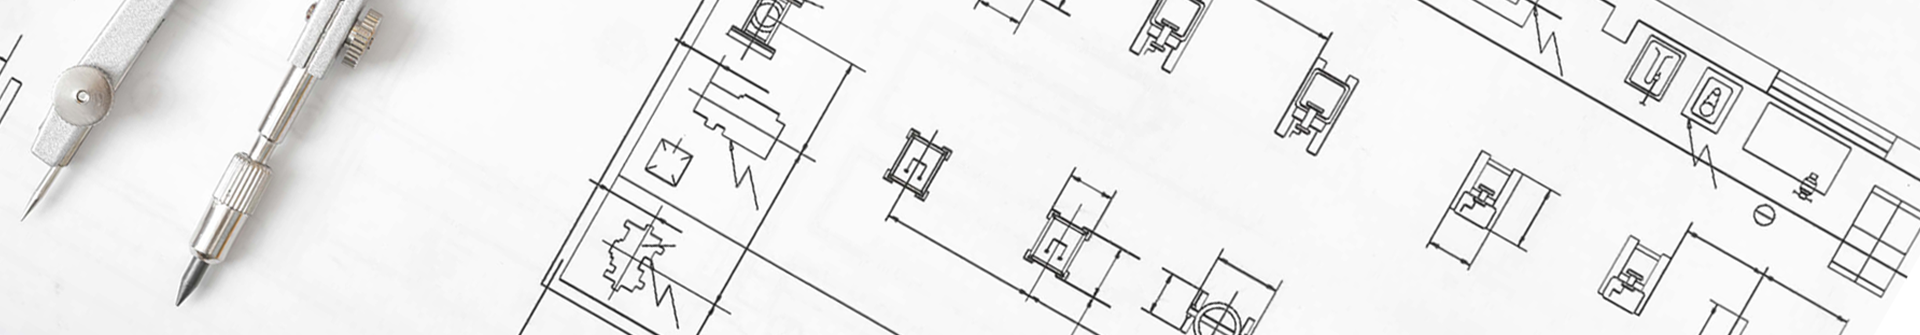 As-Built Drawings | As-Built Documentation Services Company